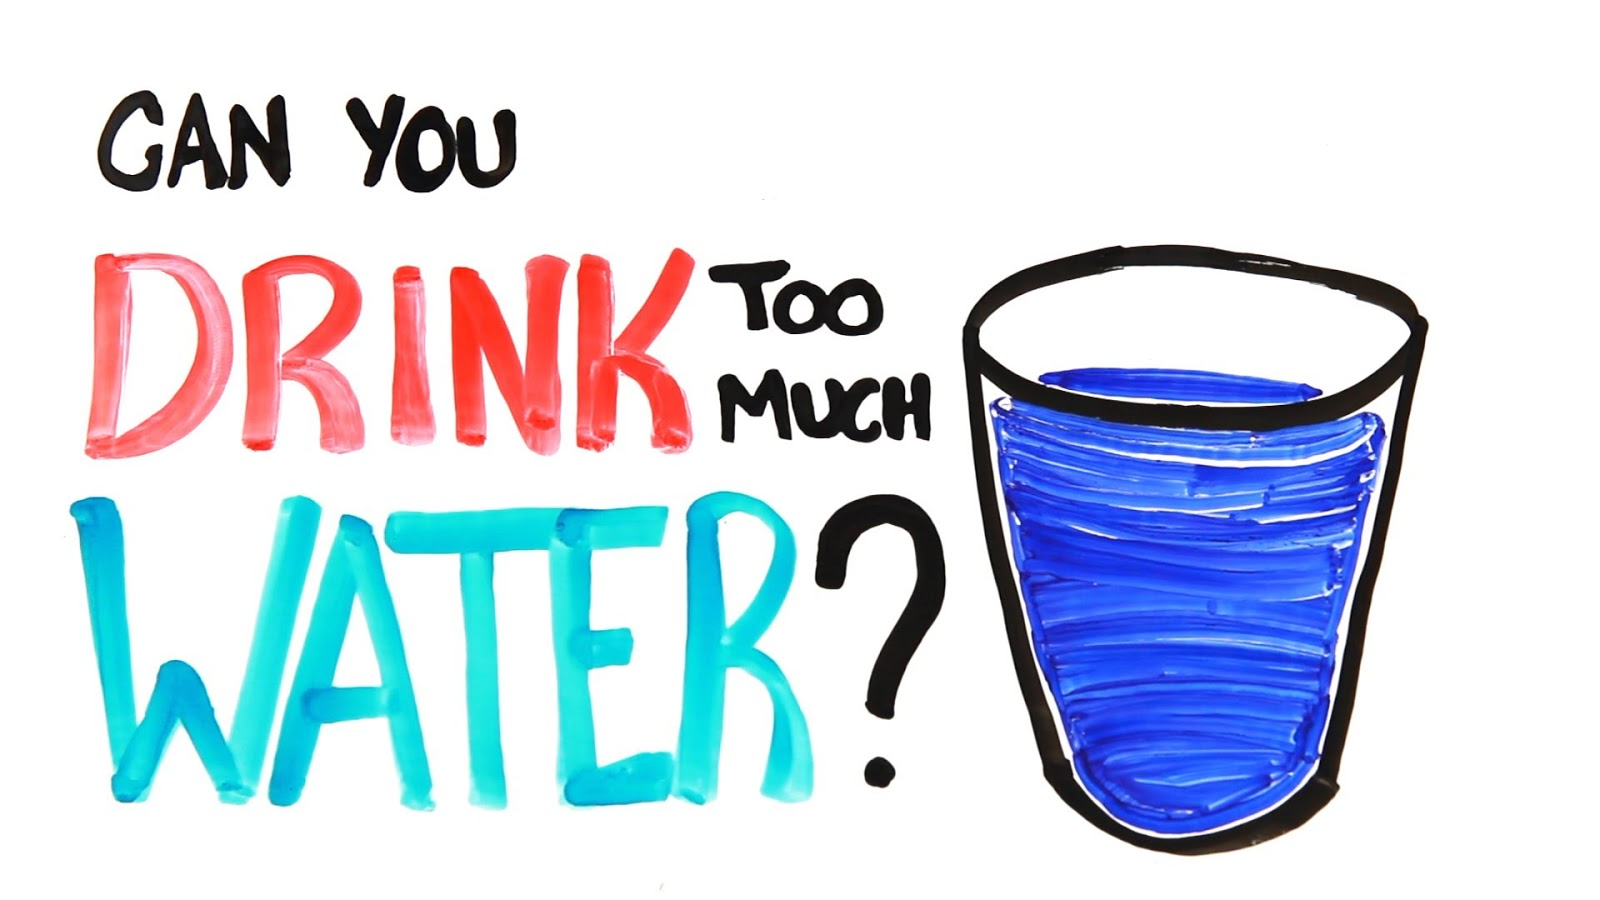 Should You Drink Water While Drinking Alcohol